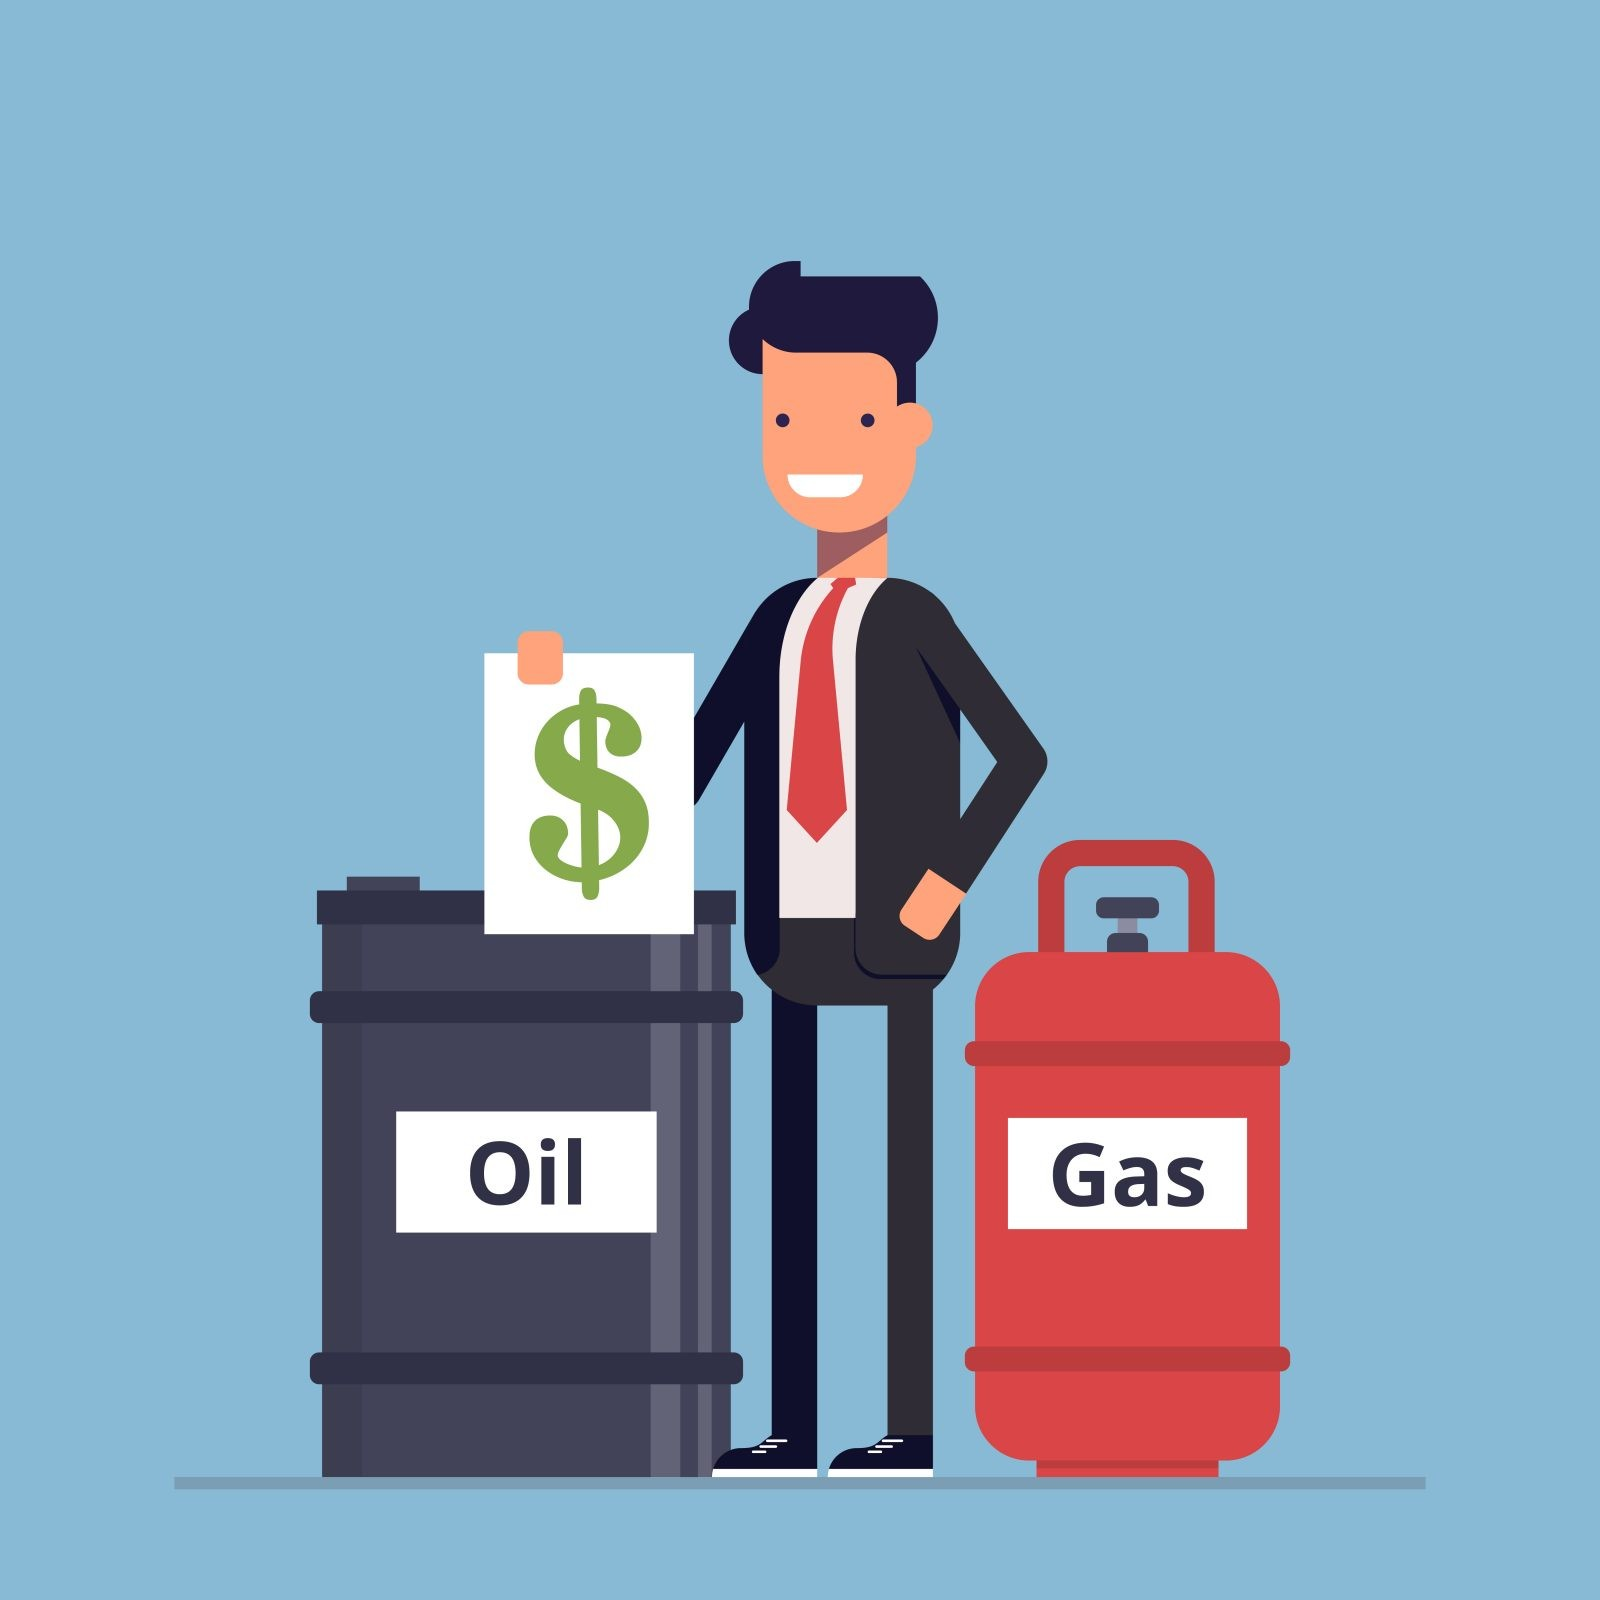 Natural Gas and Crude Oil